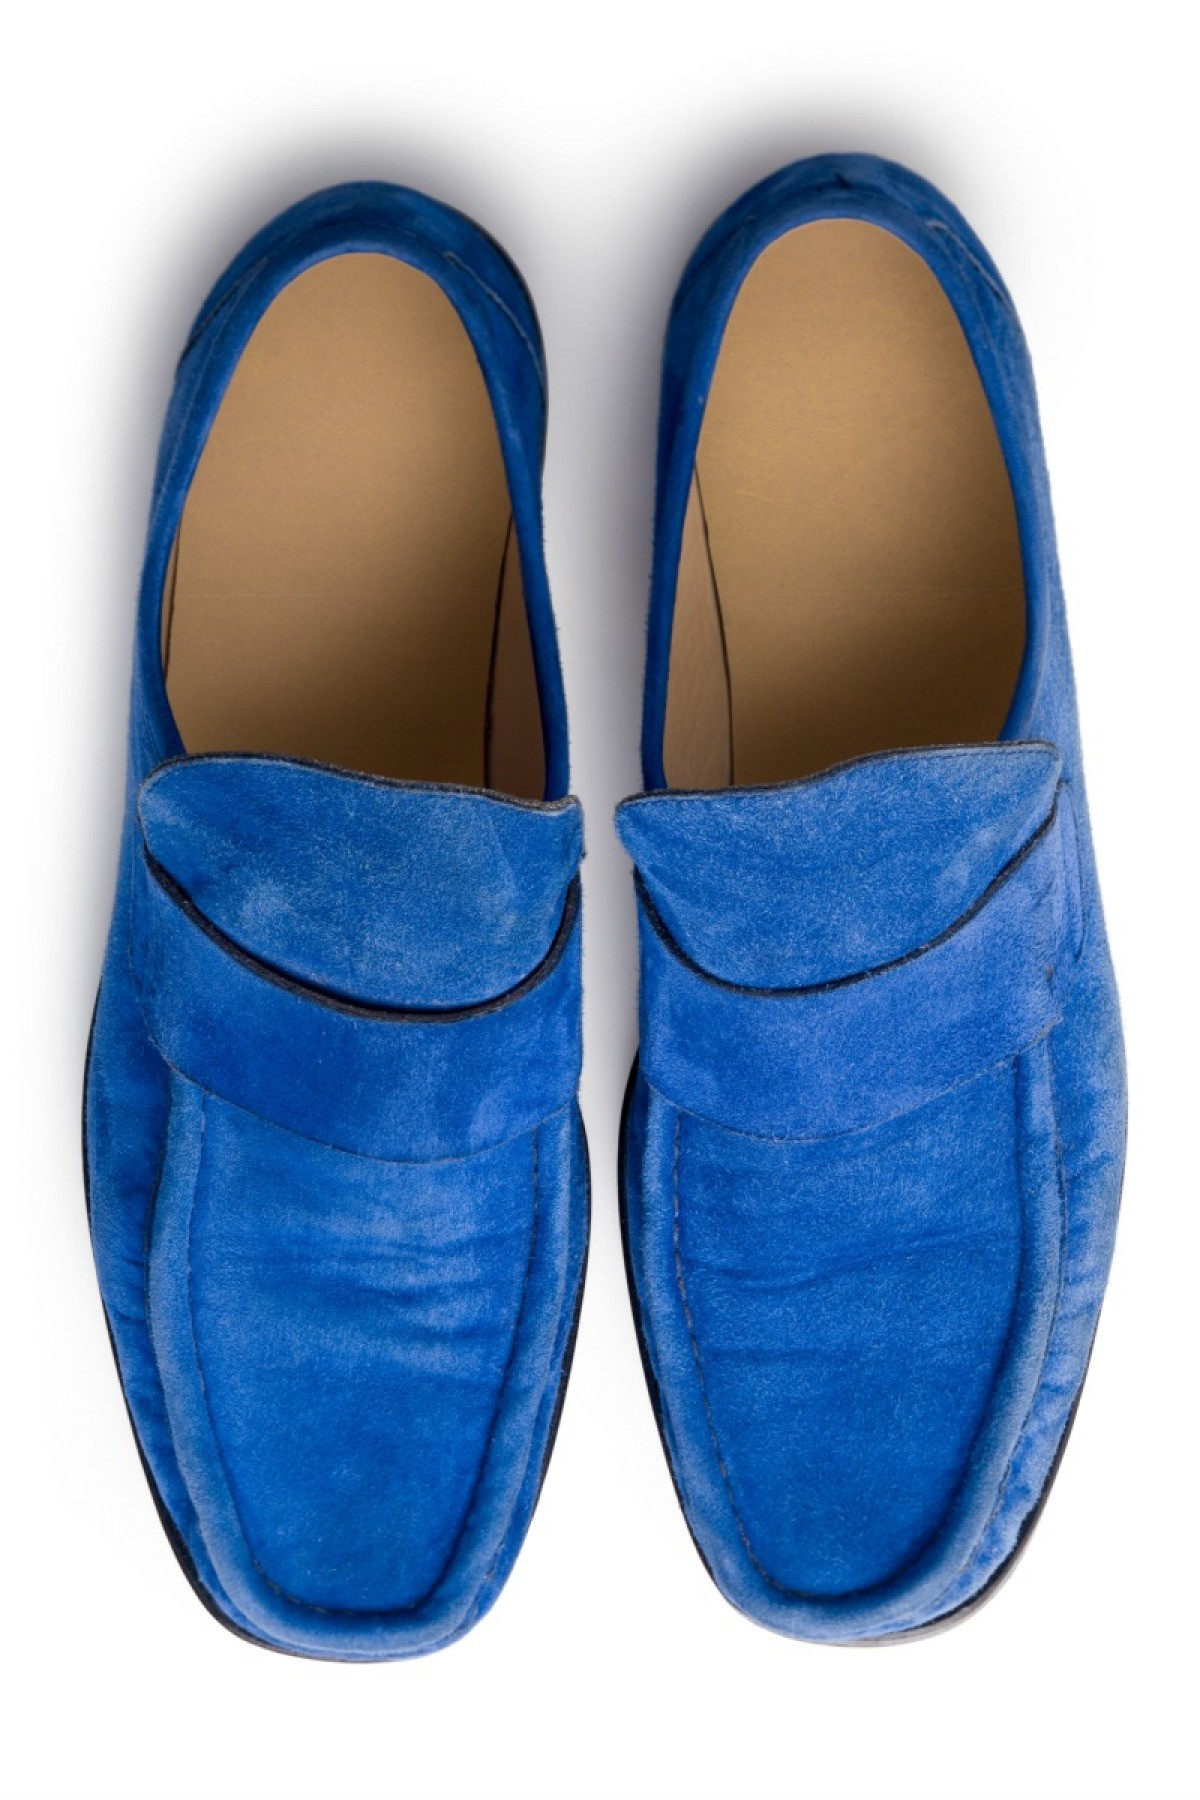 large discount wholesale online autumn shoes Dyeing Suede Shoes | ThriftyFun